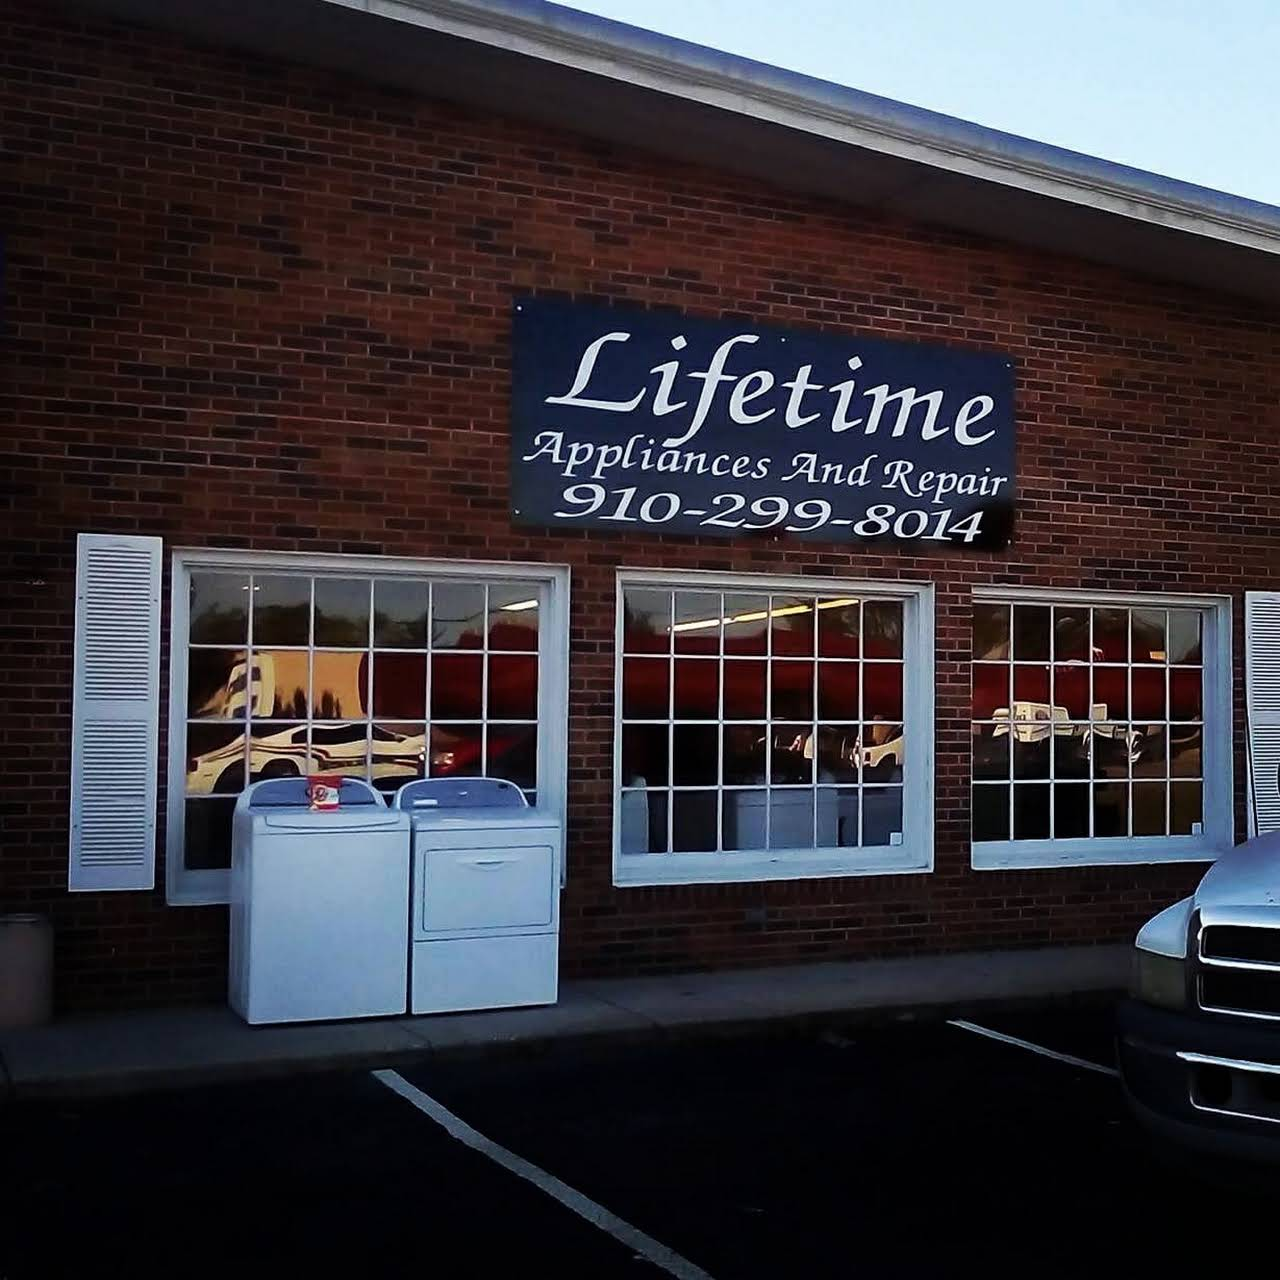 Lifetime Appliance and Repair - Used Appliance Store in